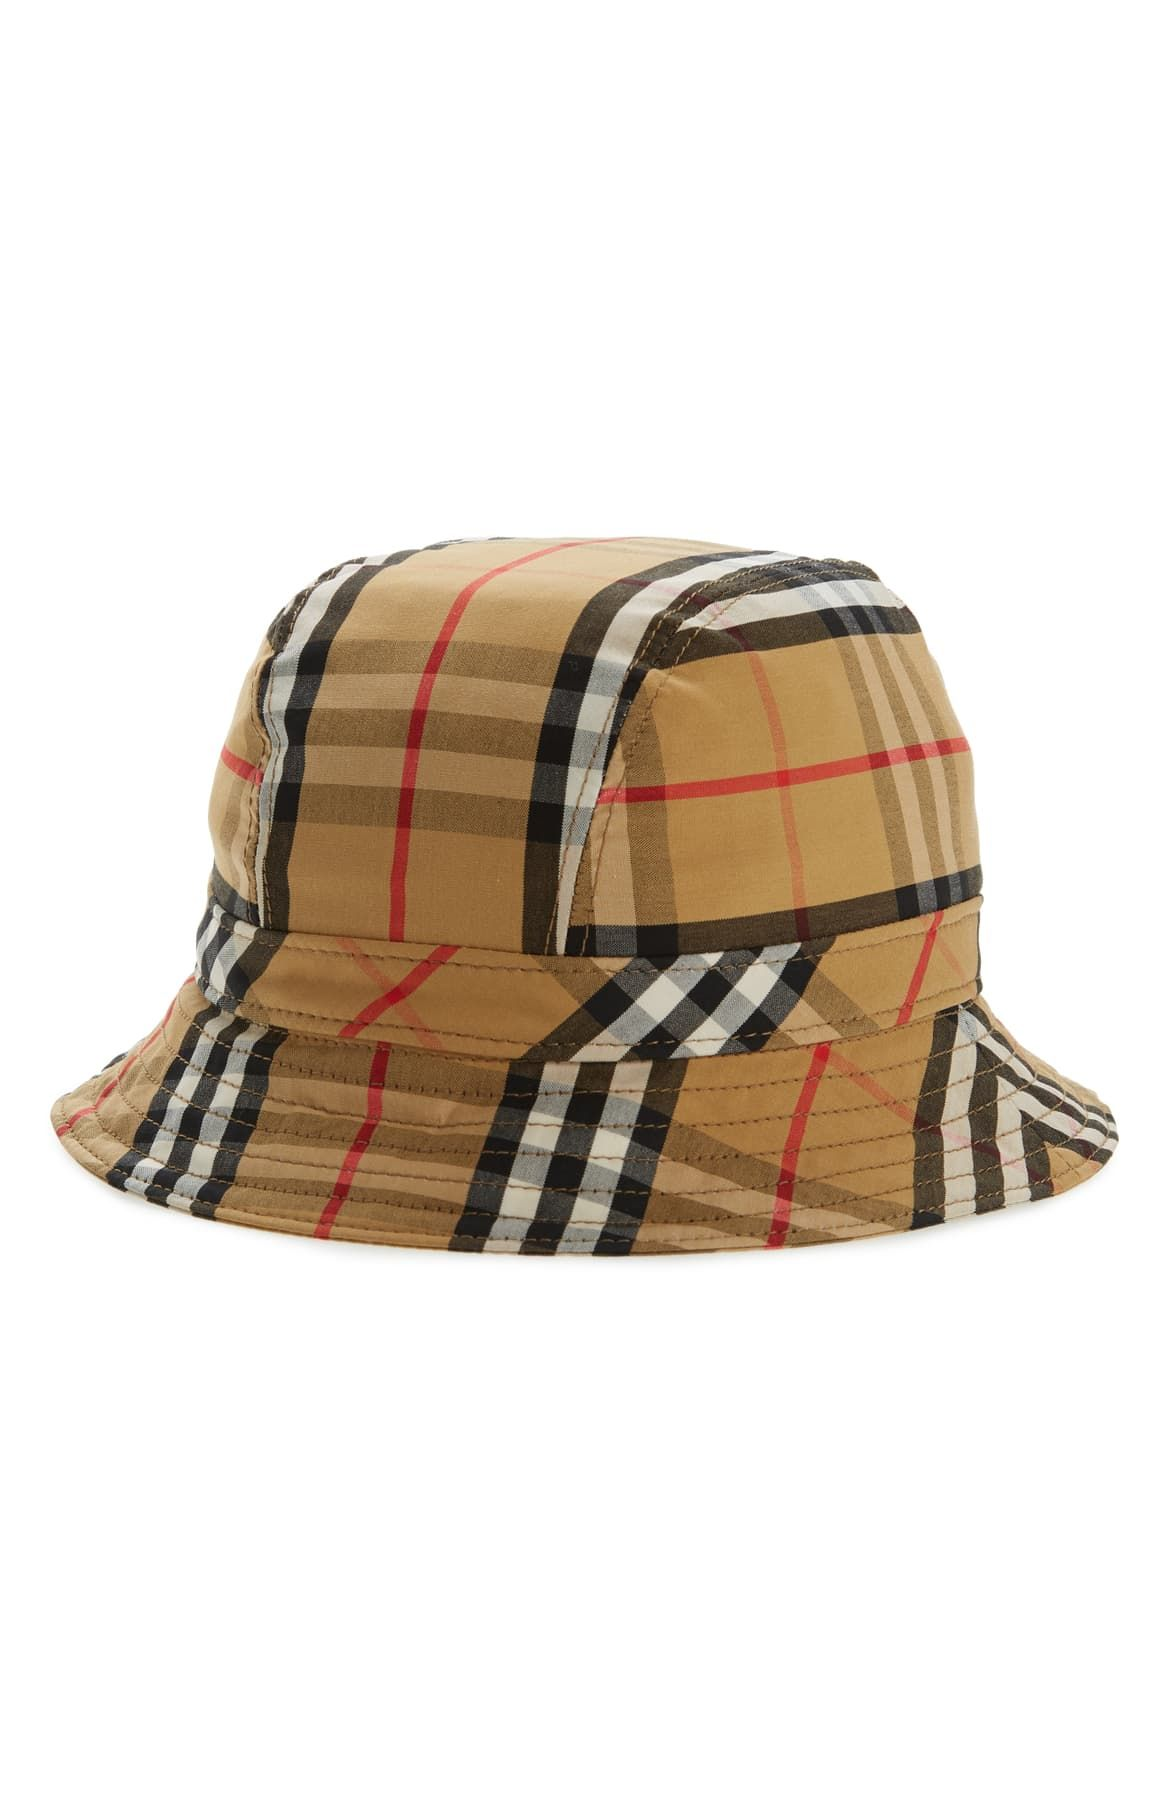 Burberry vintage check bucket hat with images burberry